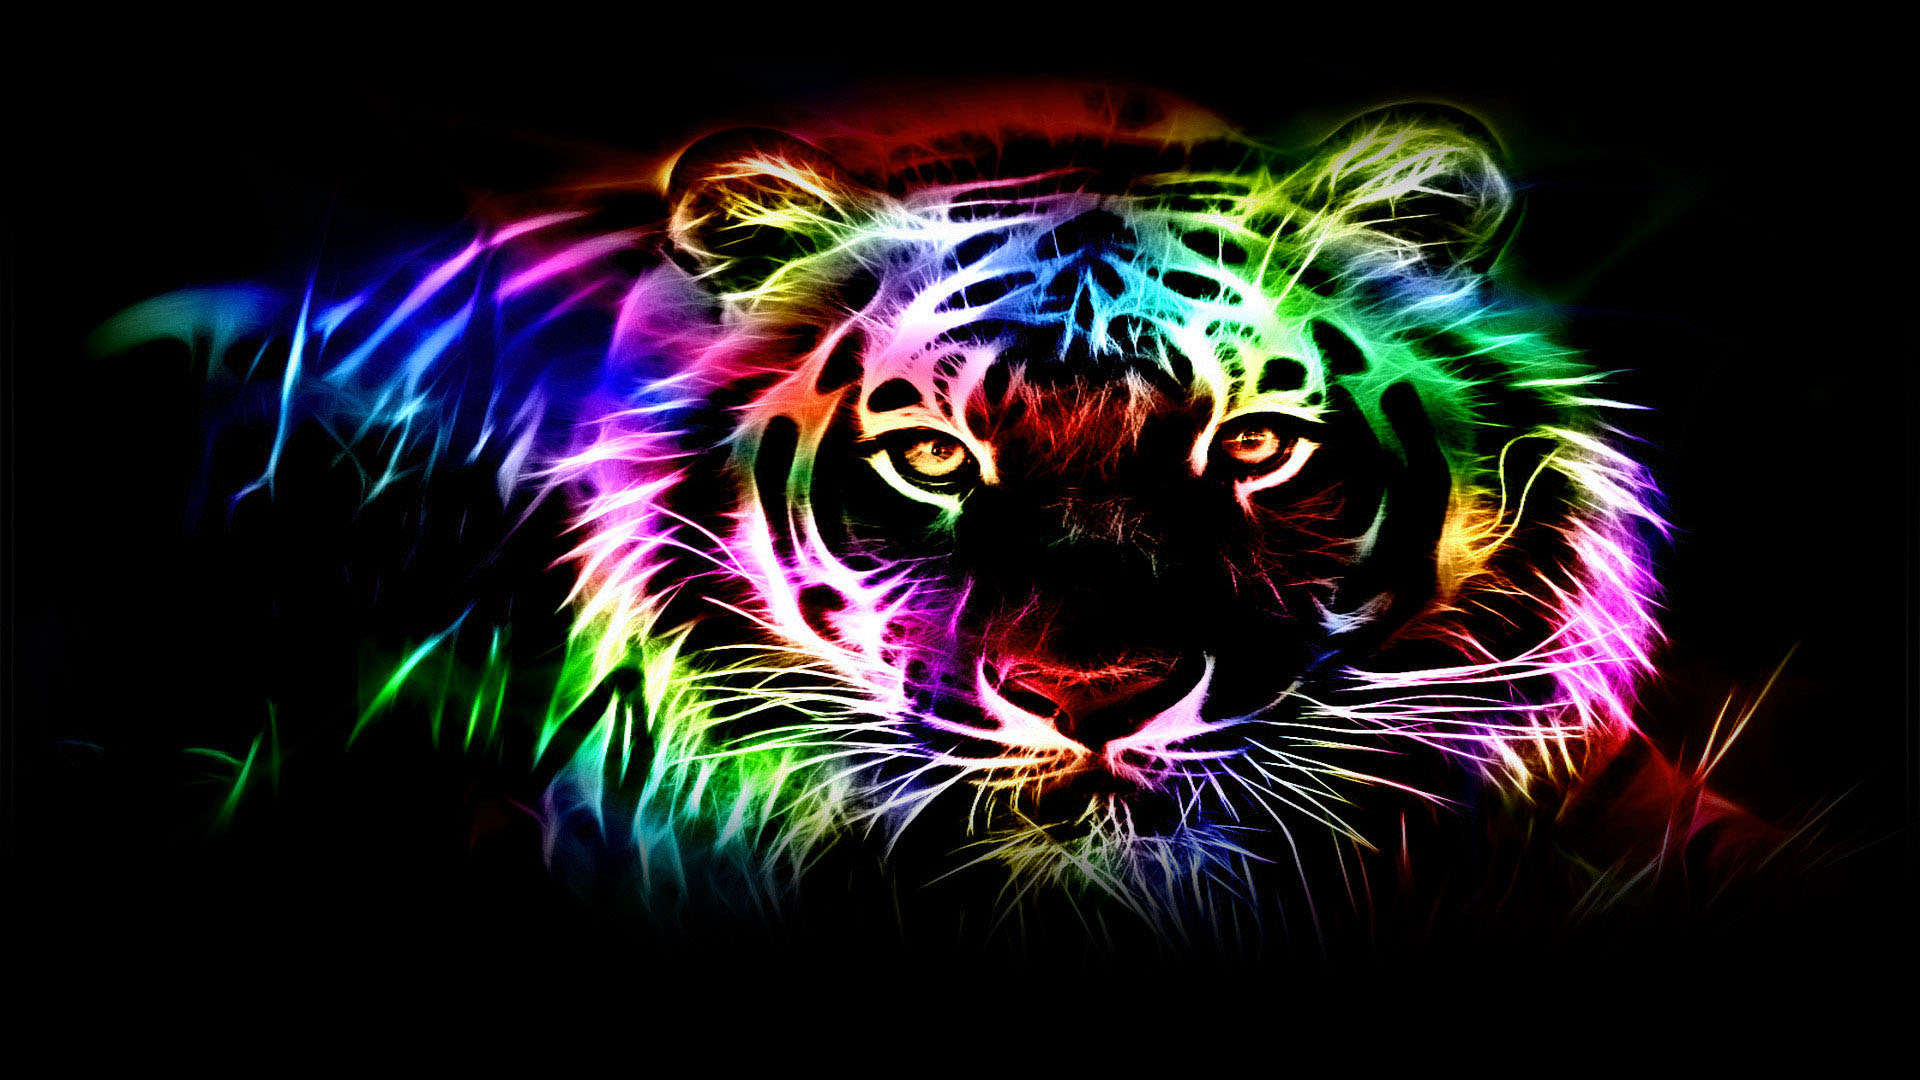 Cool Neon Cars Wallpapers Tiger Hd Wallpapers Free Download